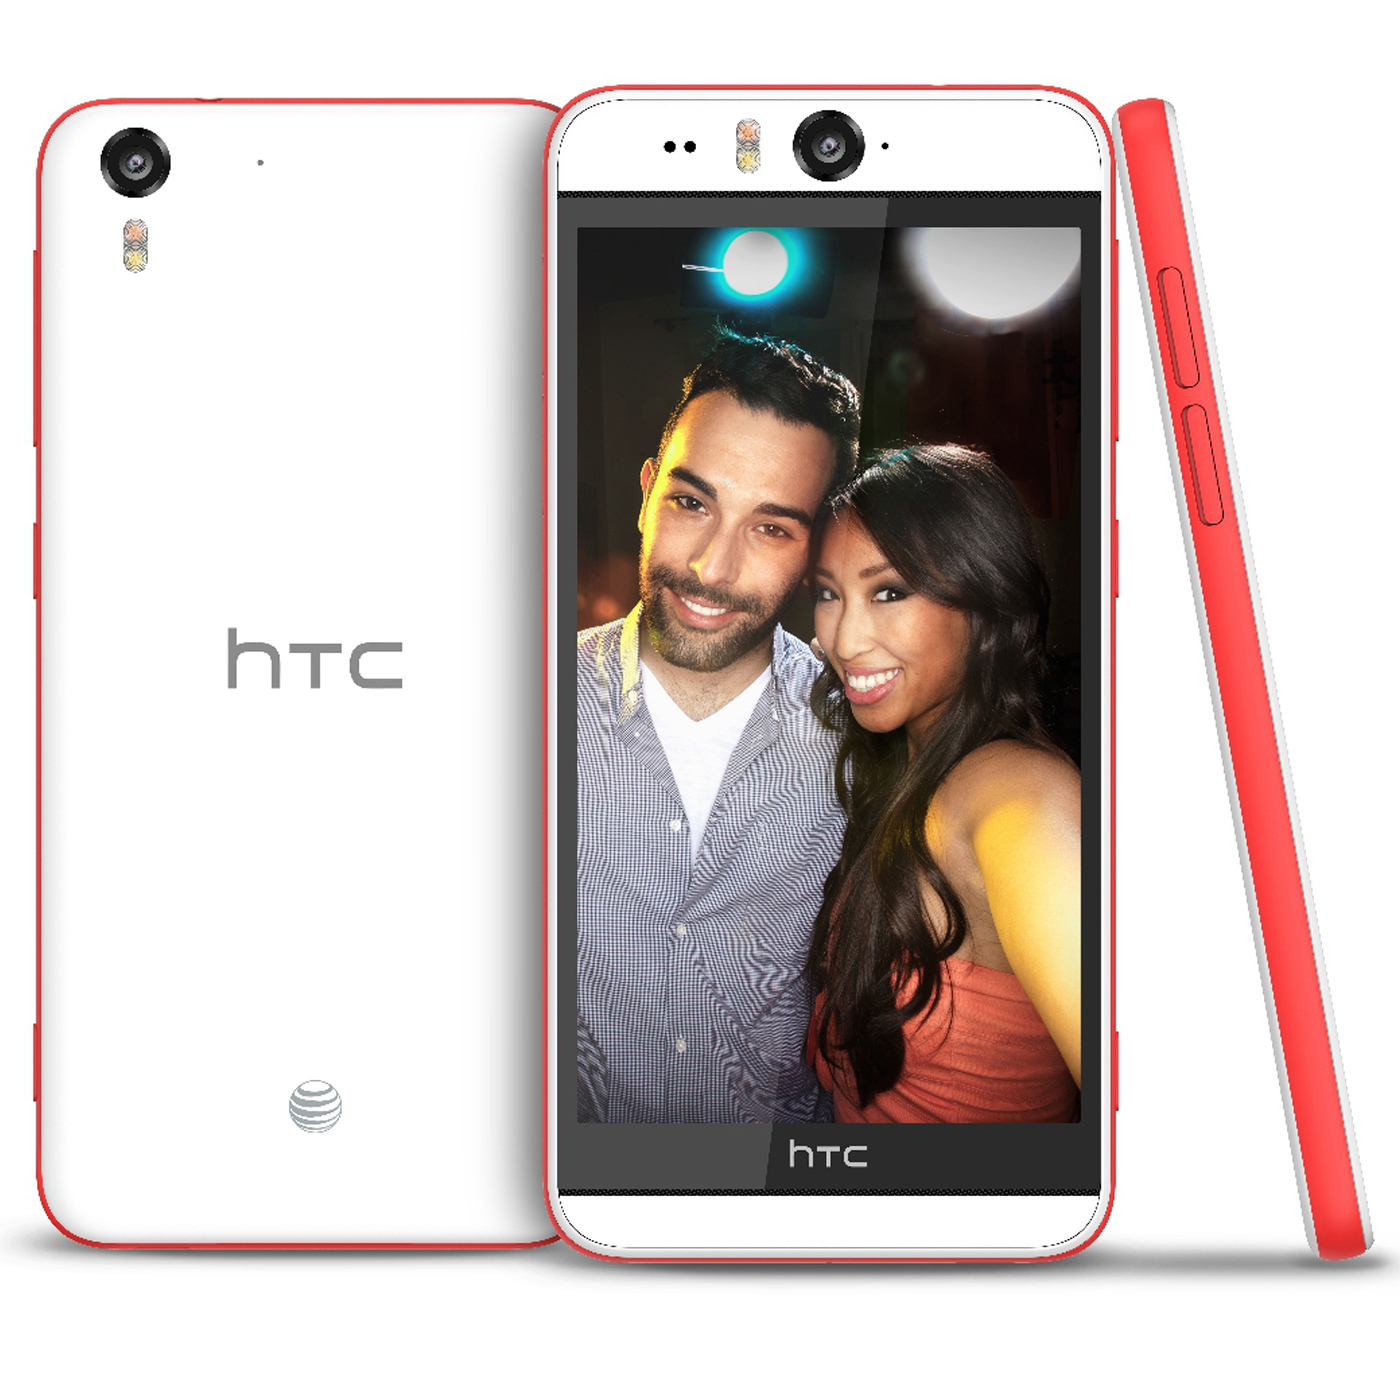 "New HTC Desire Eye OPFH100 16GB GSM Unlocked 4G LTE 5.2"" IPS LCD 2GB RAM 13MP Smartphone - White & Red AT&T Unlocked - White & Red"